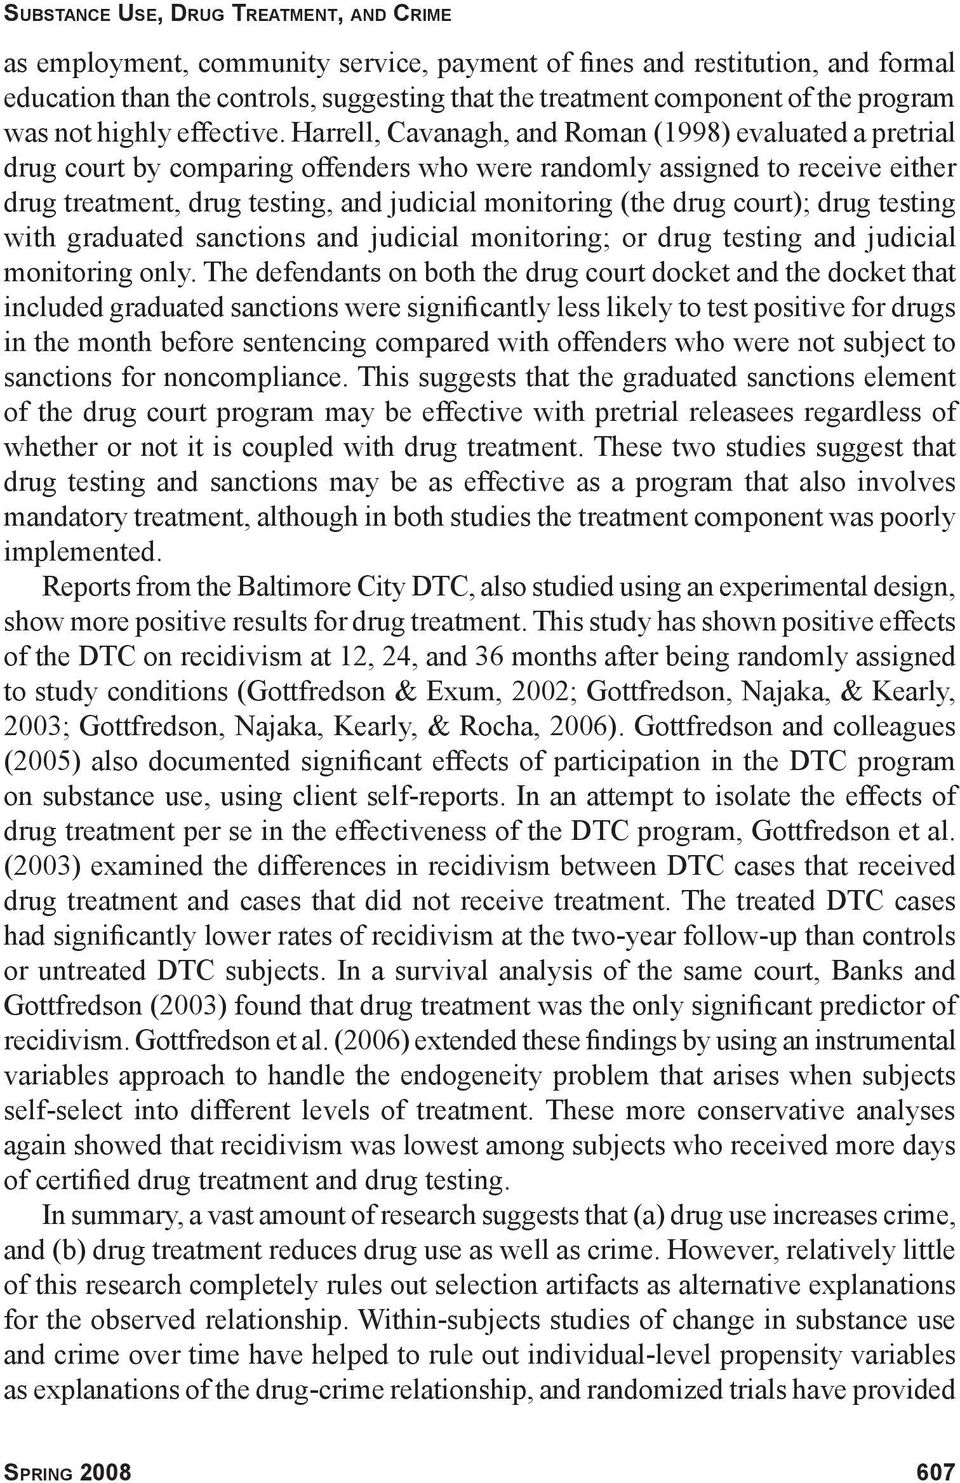 Harrell, Cavanagh, and Roman (1998) evaluated a pretrial drug court by comparing offenders who were randomly assigned to receive either drug treatment, drug testing, and judicial monitoring (the drug